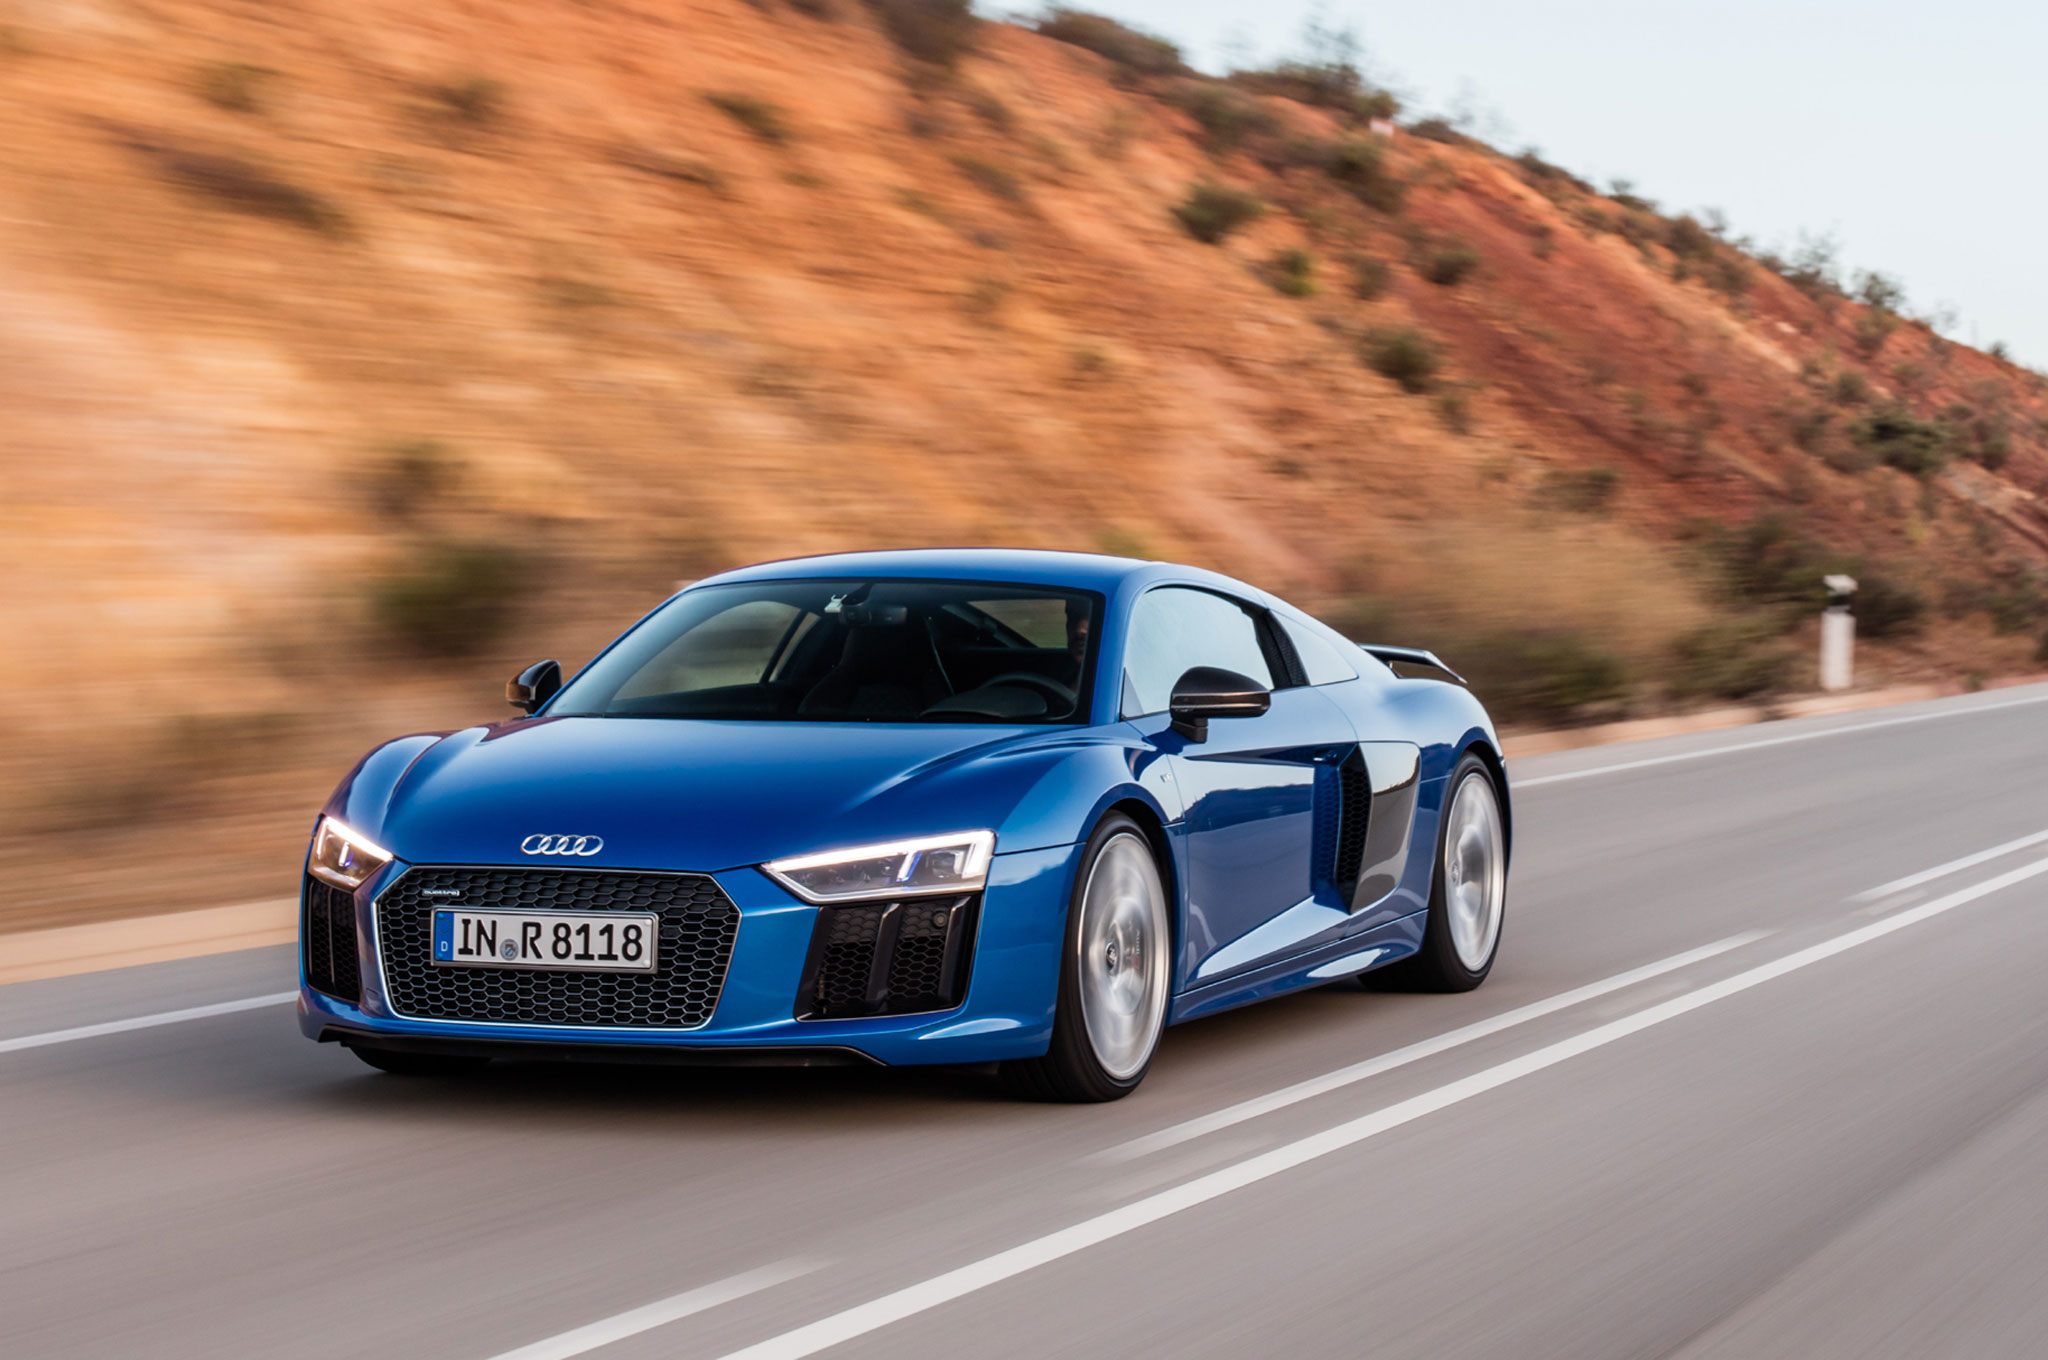 Beau 2017 Audi R8 V10 Plus Front Three Quarter In Motion 02